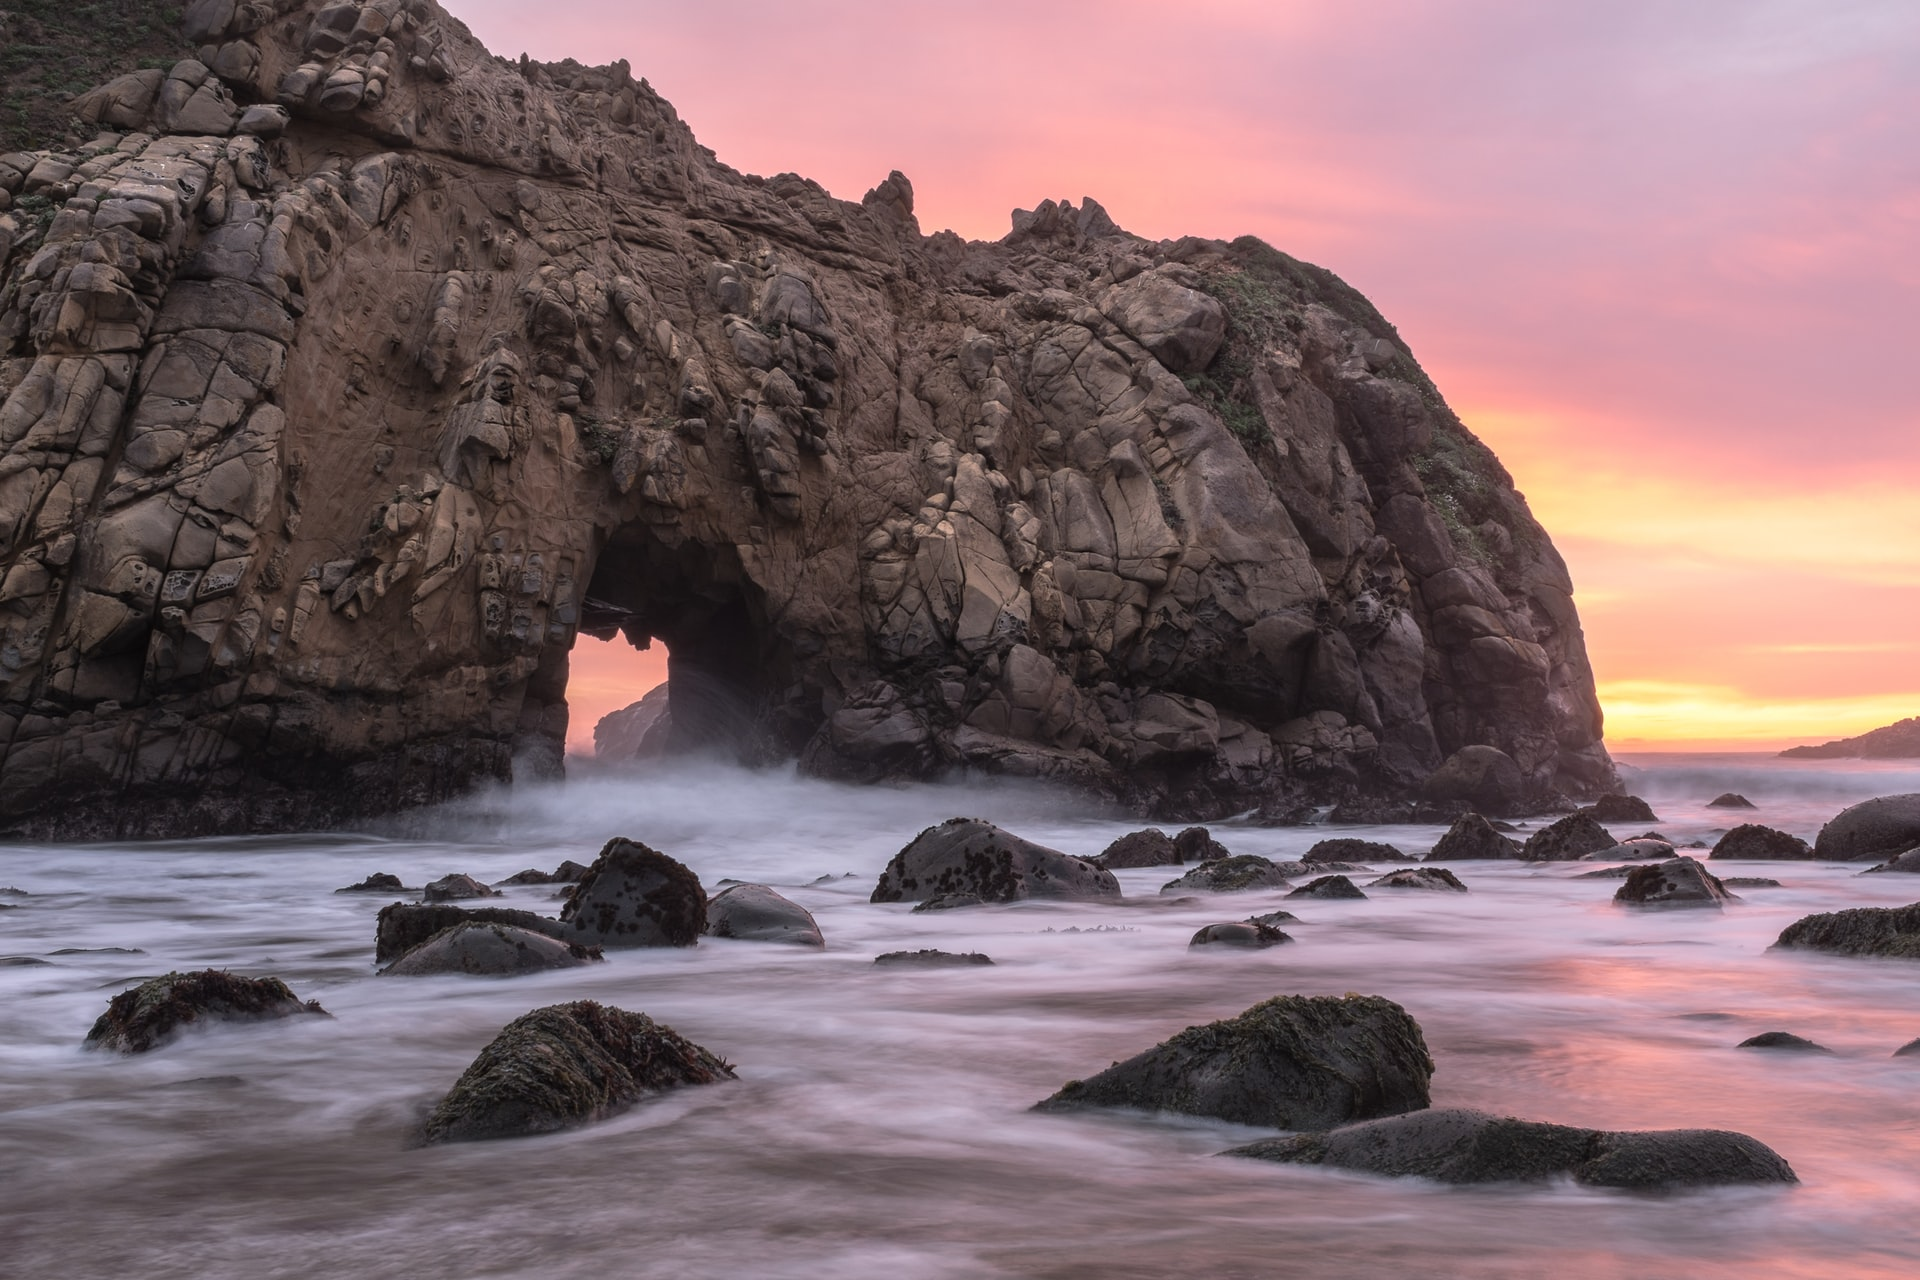 Best Beaches in California. Keyhole Rock, Big Sur